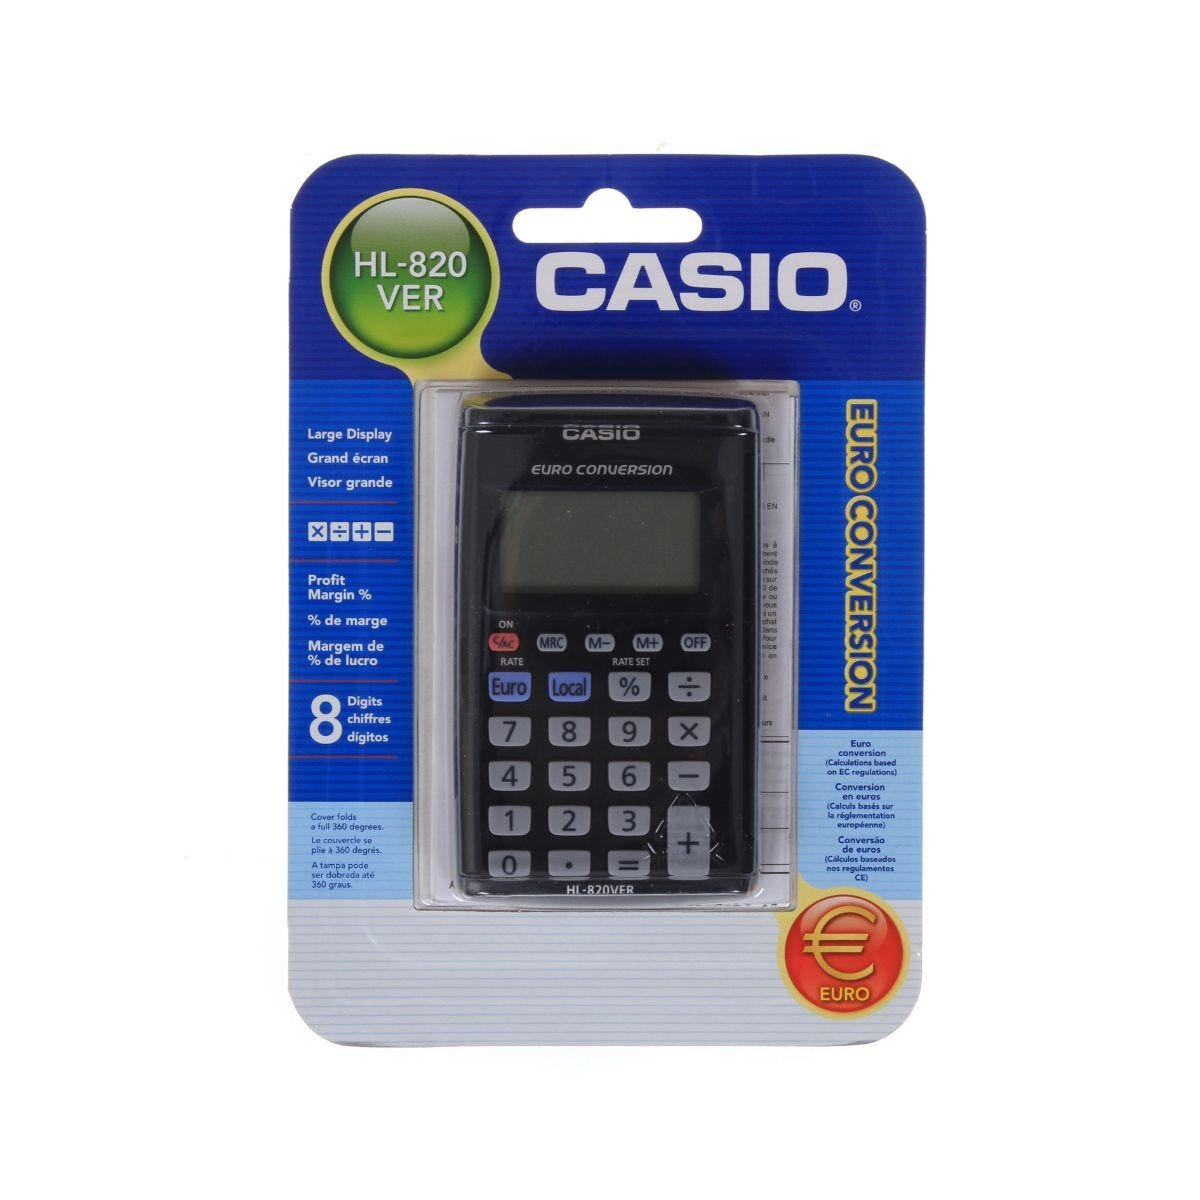 Casio Pocket Calculator HL-820VER